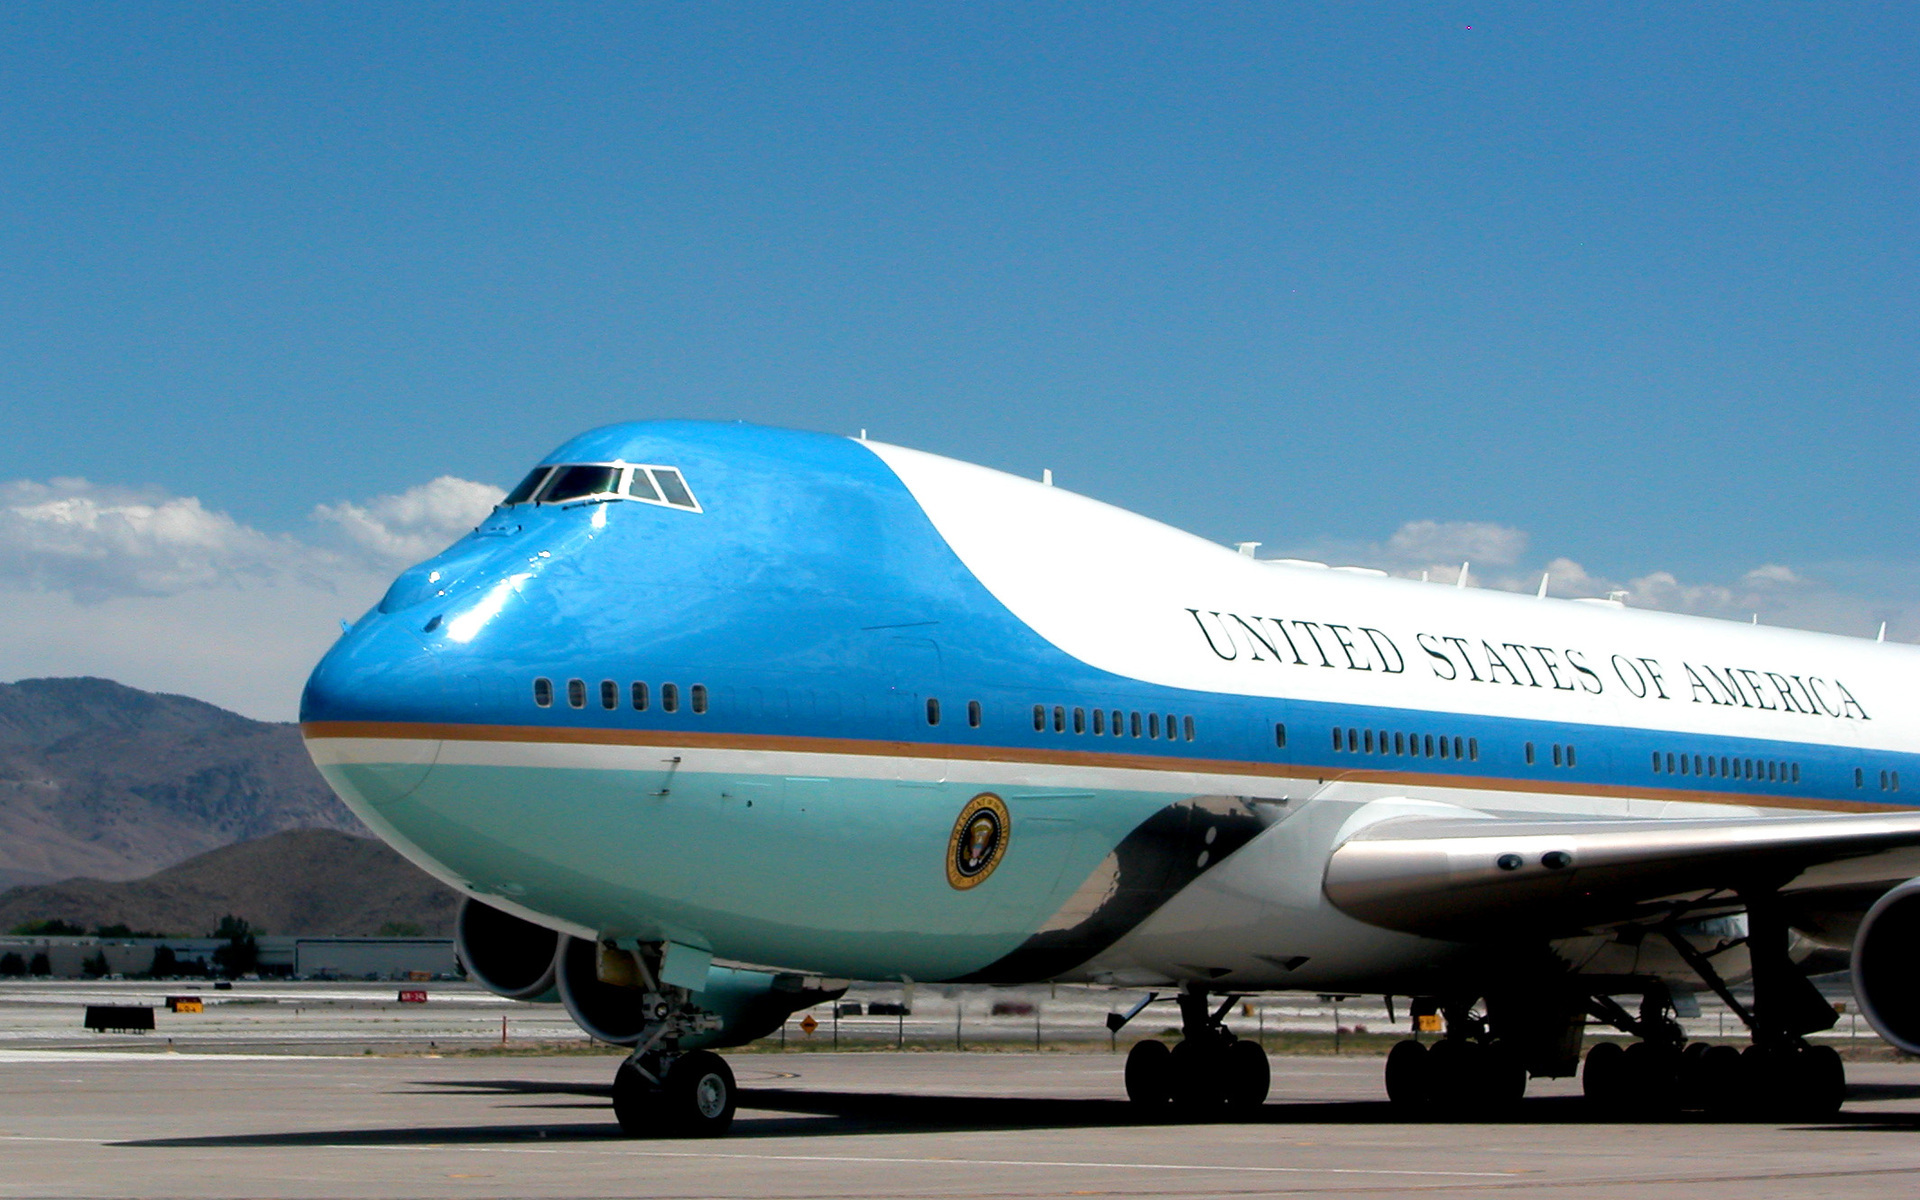 Trump For President Iphone Wallpaper Union Members Proud To Build Next Air Force One